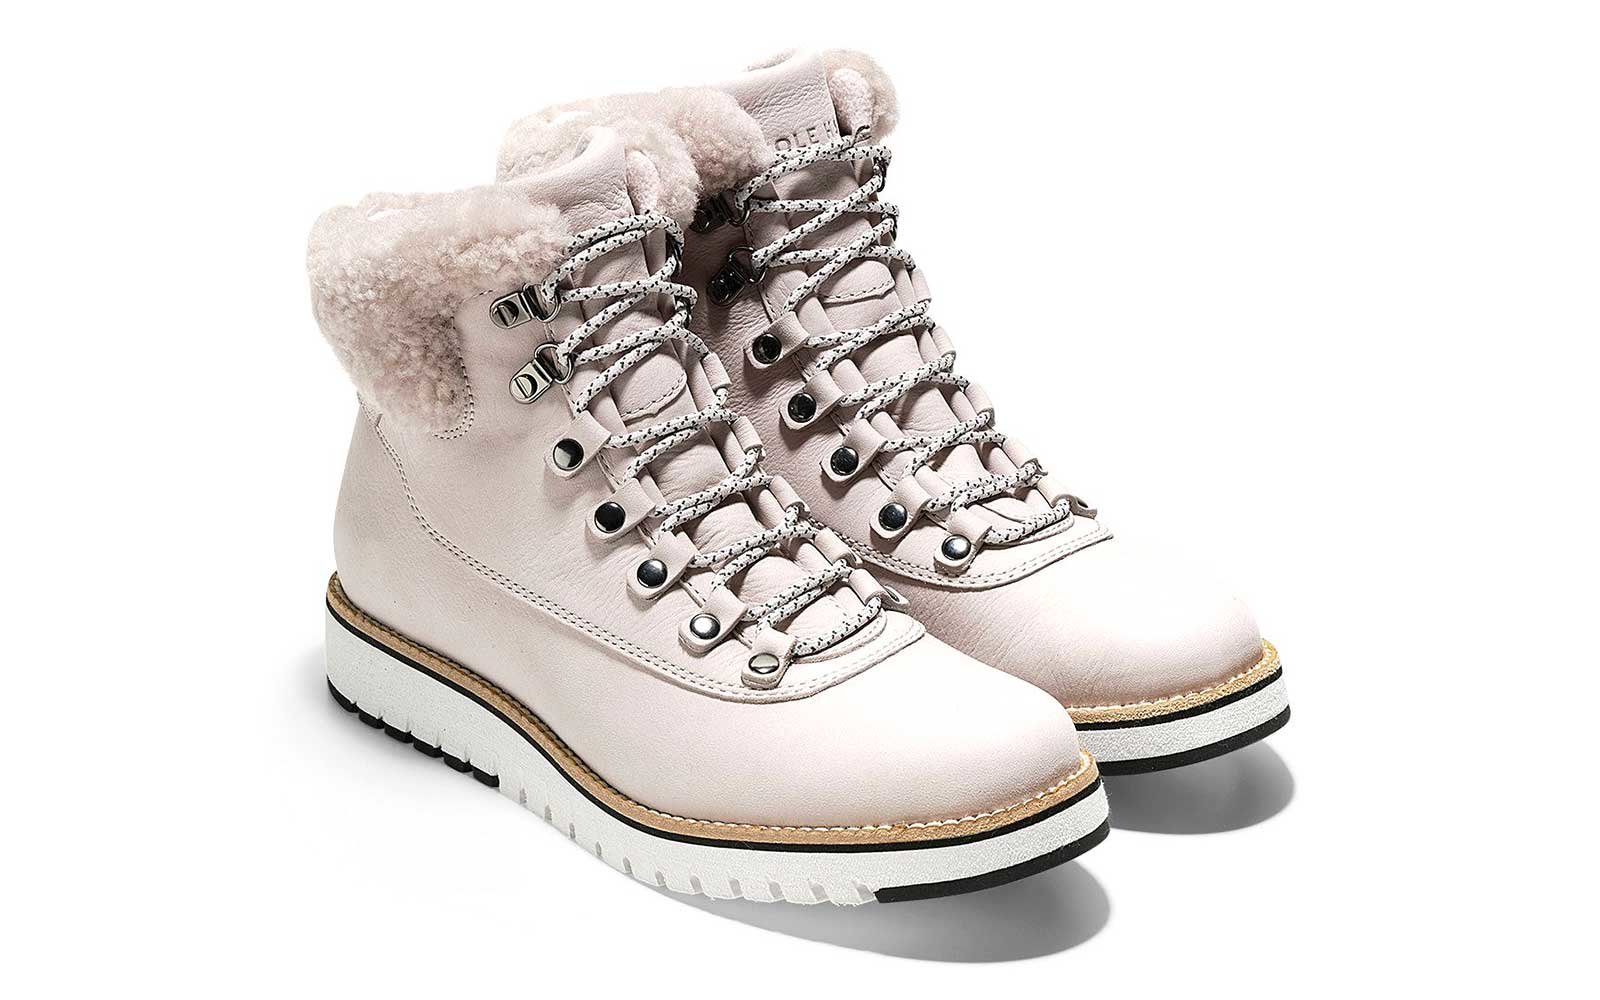 Nubuck hiker boots by Cole Haan